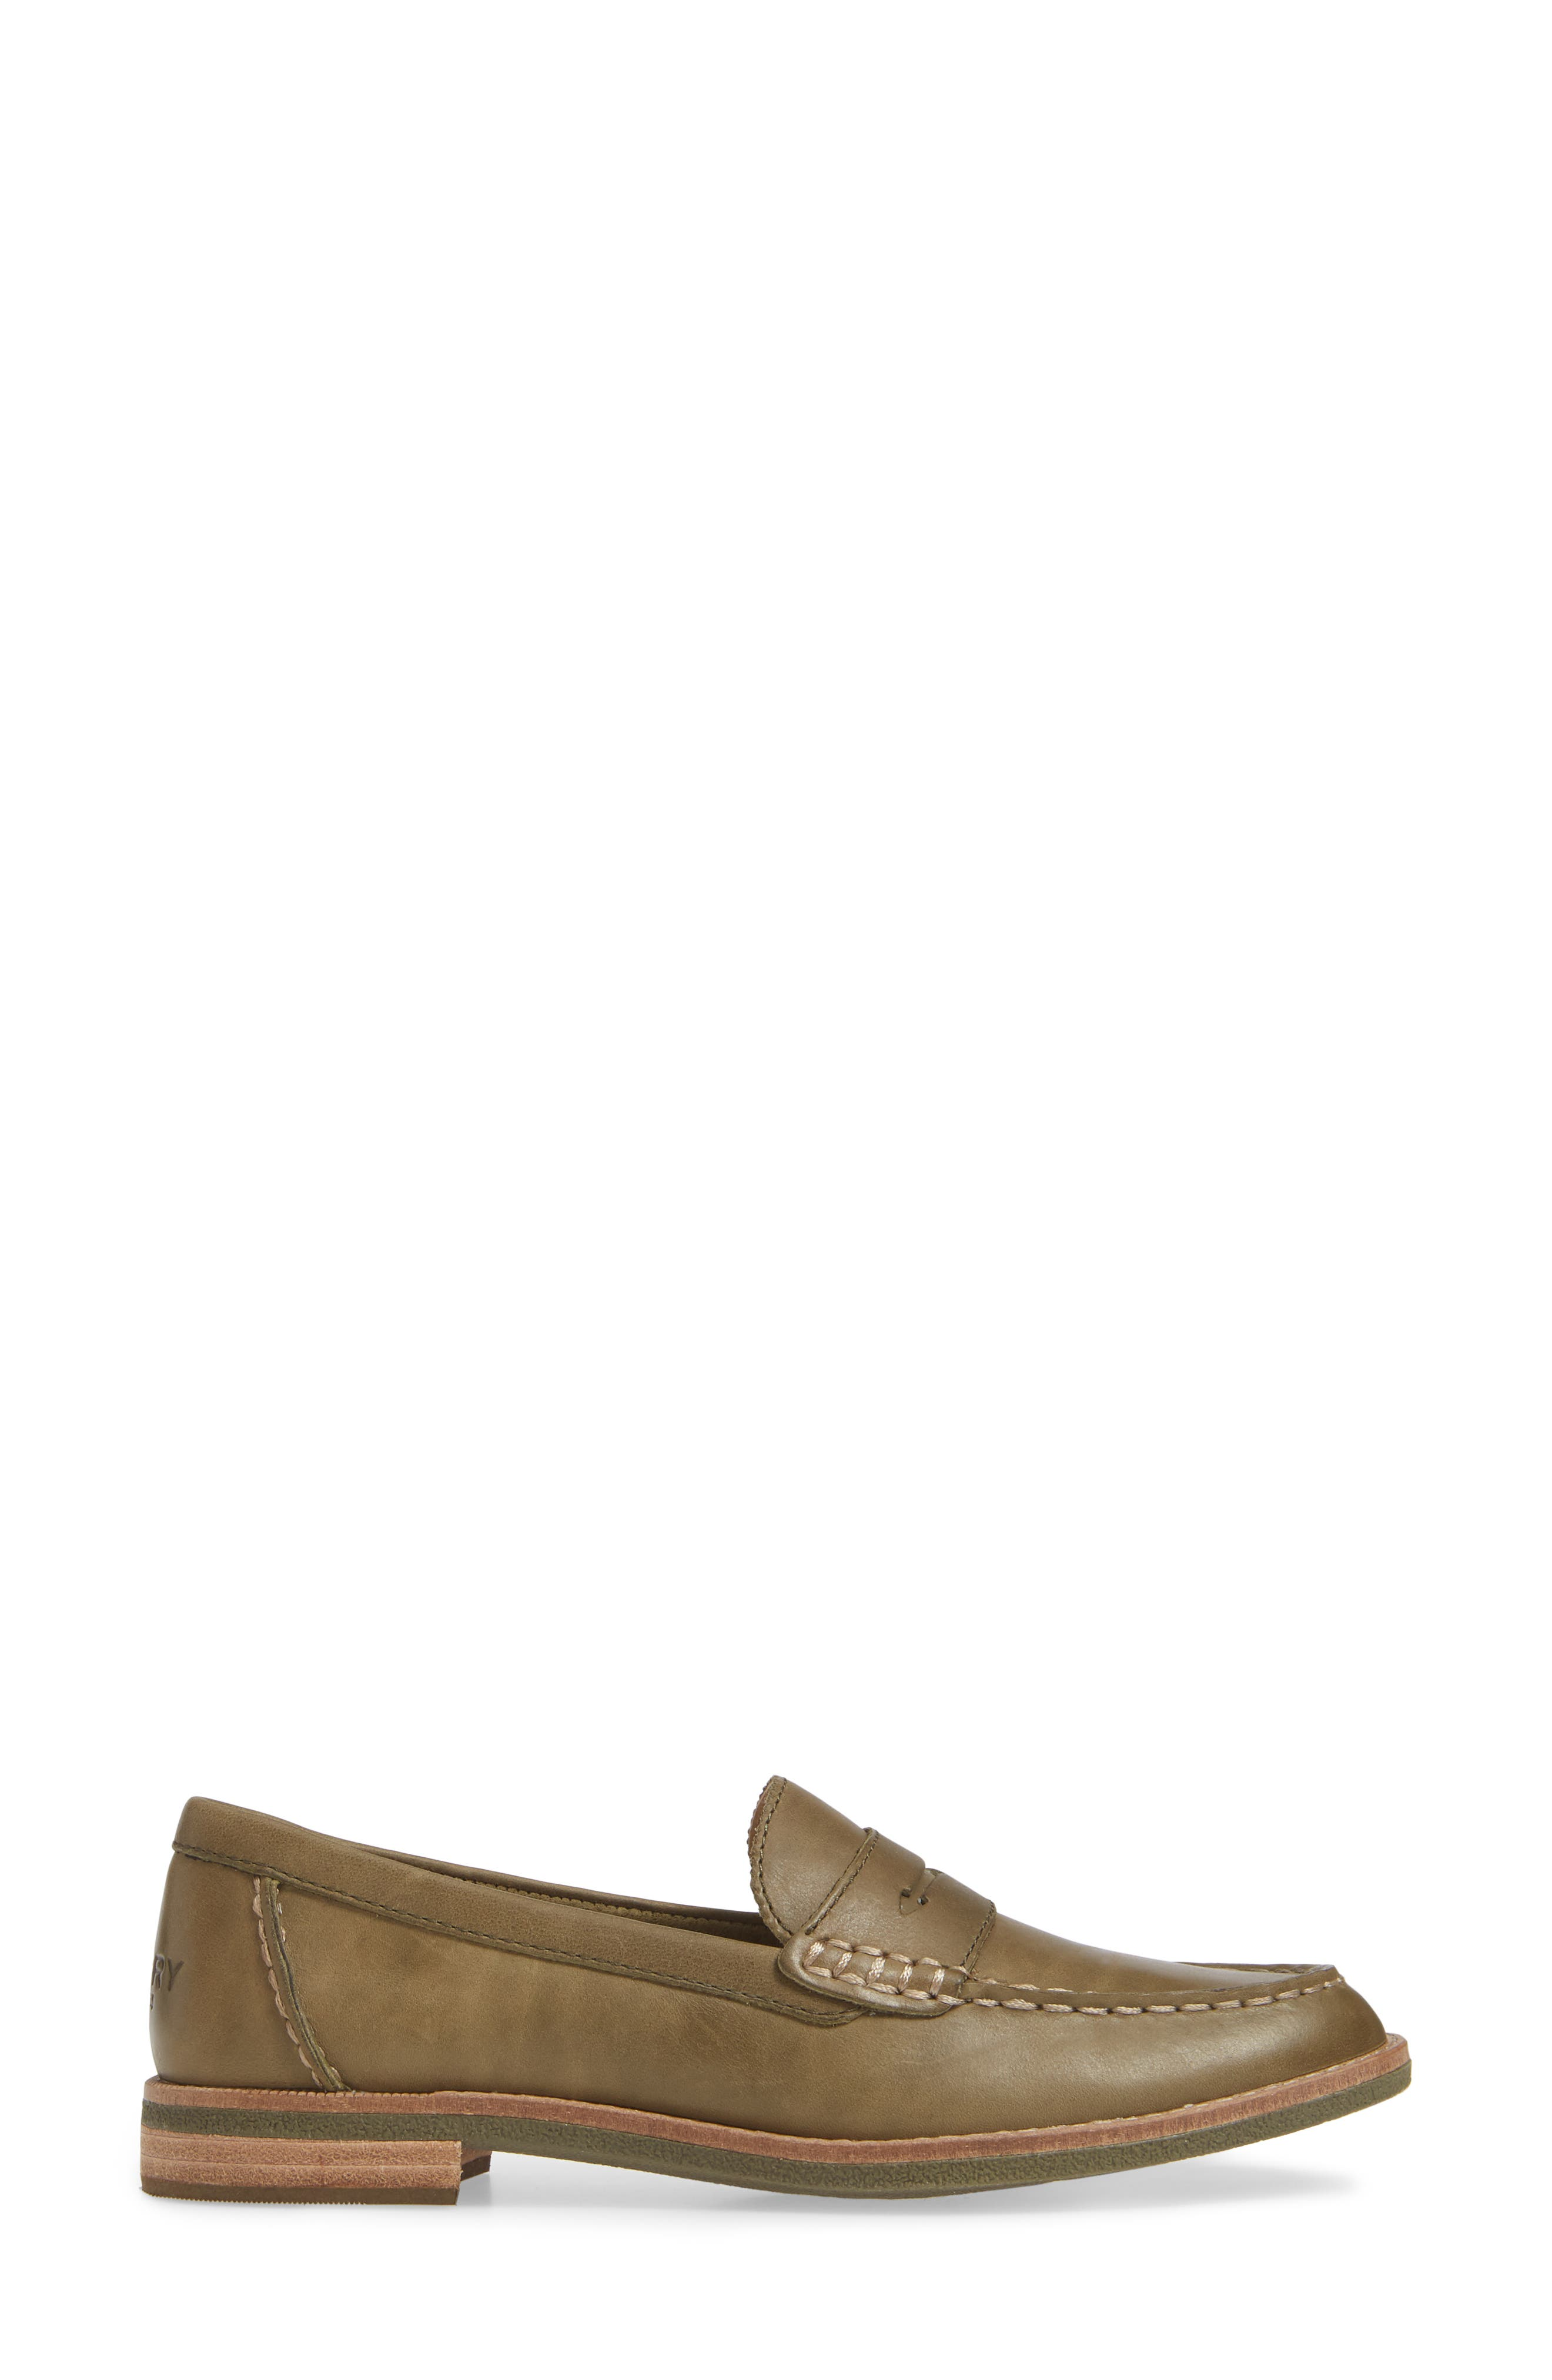 Seaport Penny Loafer,                             Alternate thumbnail 3, color,                             OLIVE LEATHER